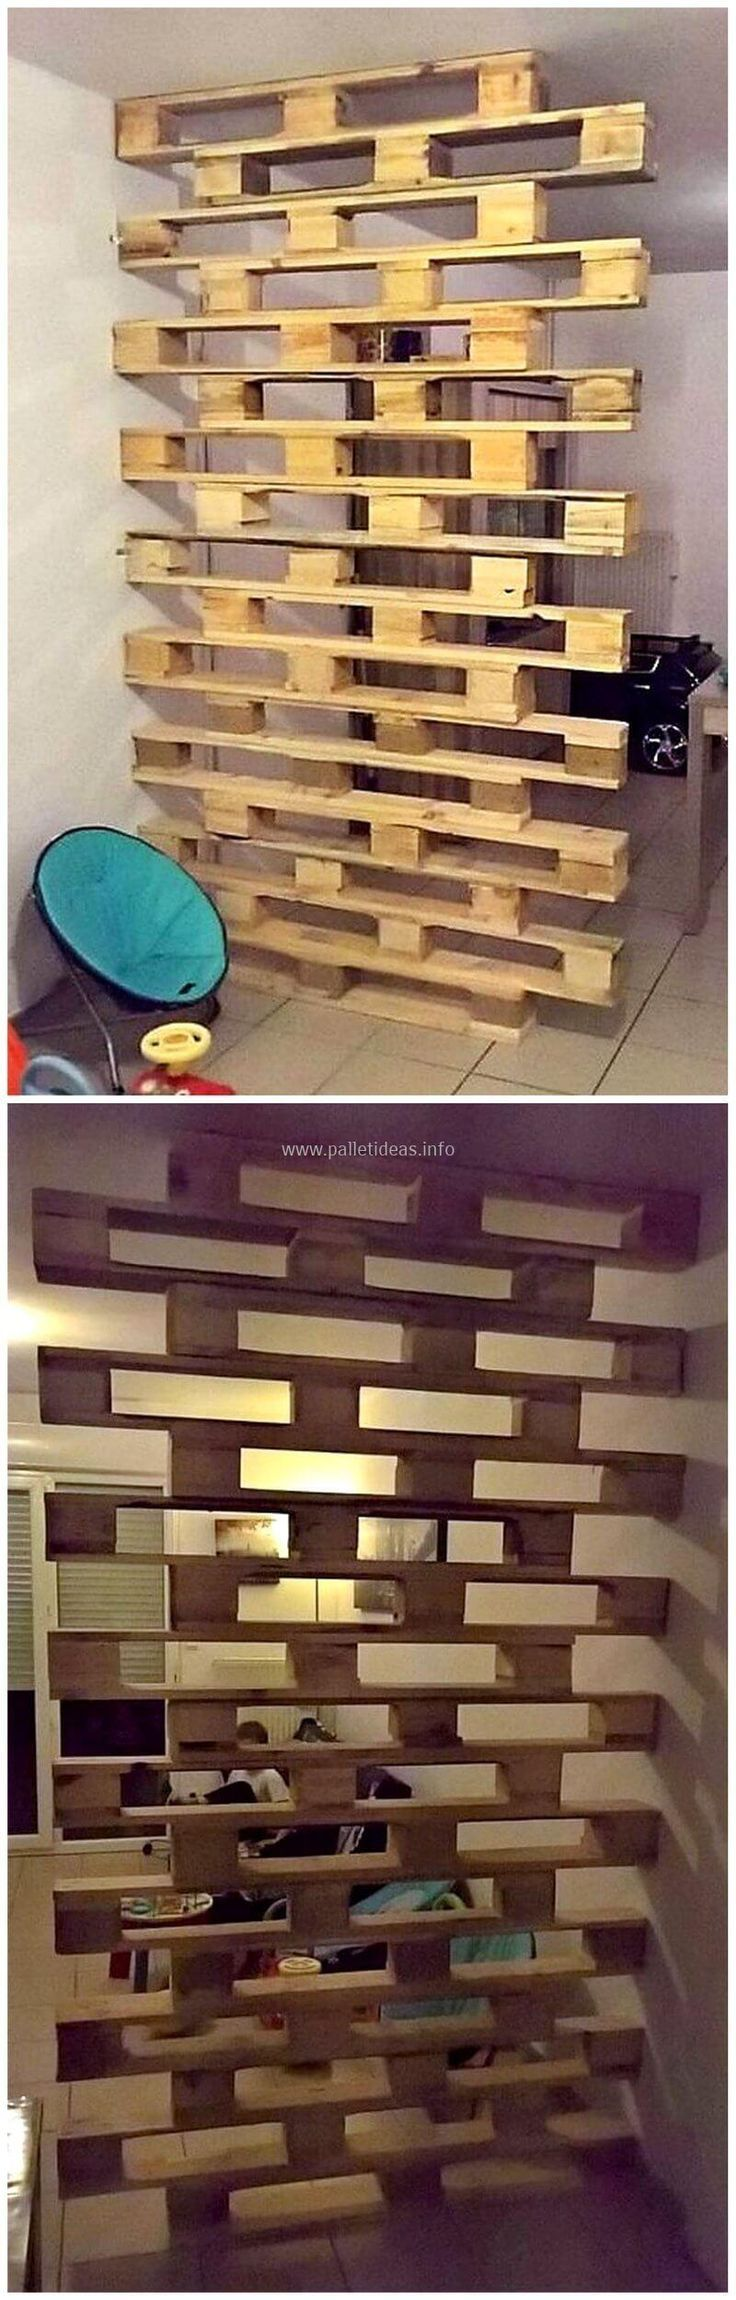 This wood pallet space divider plan is crafted for your ease if you